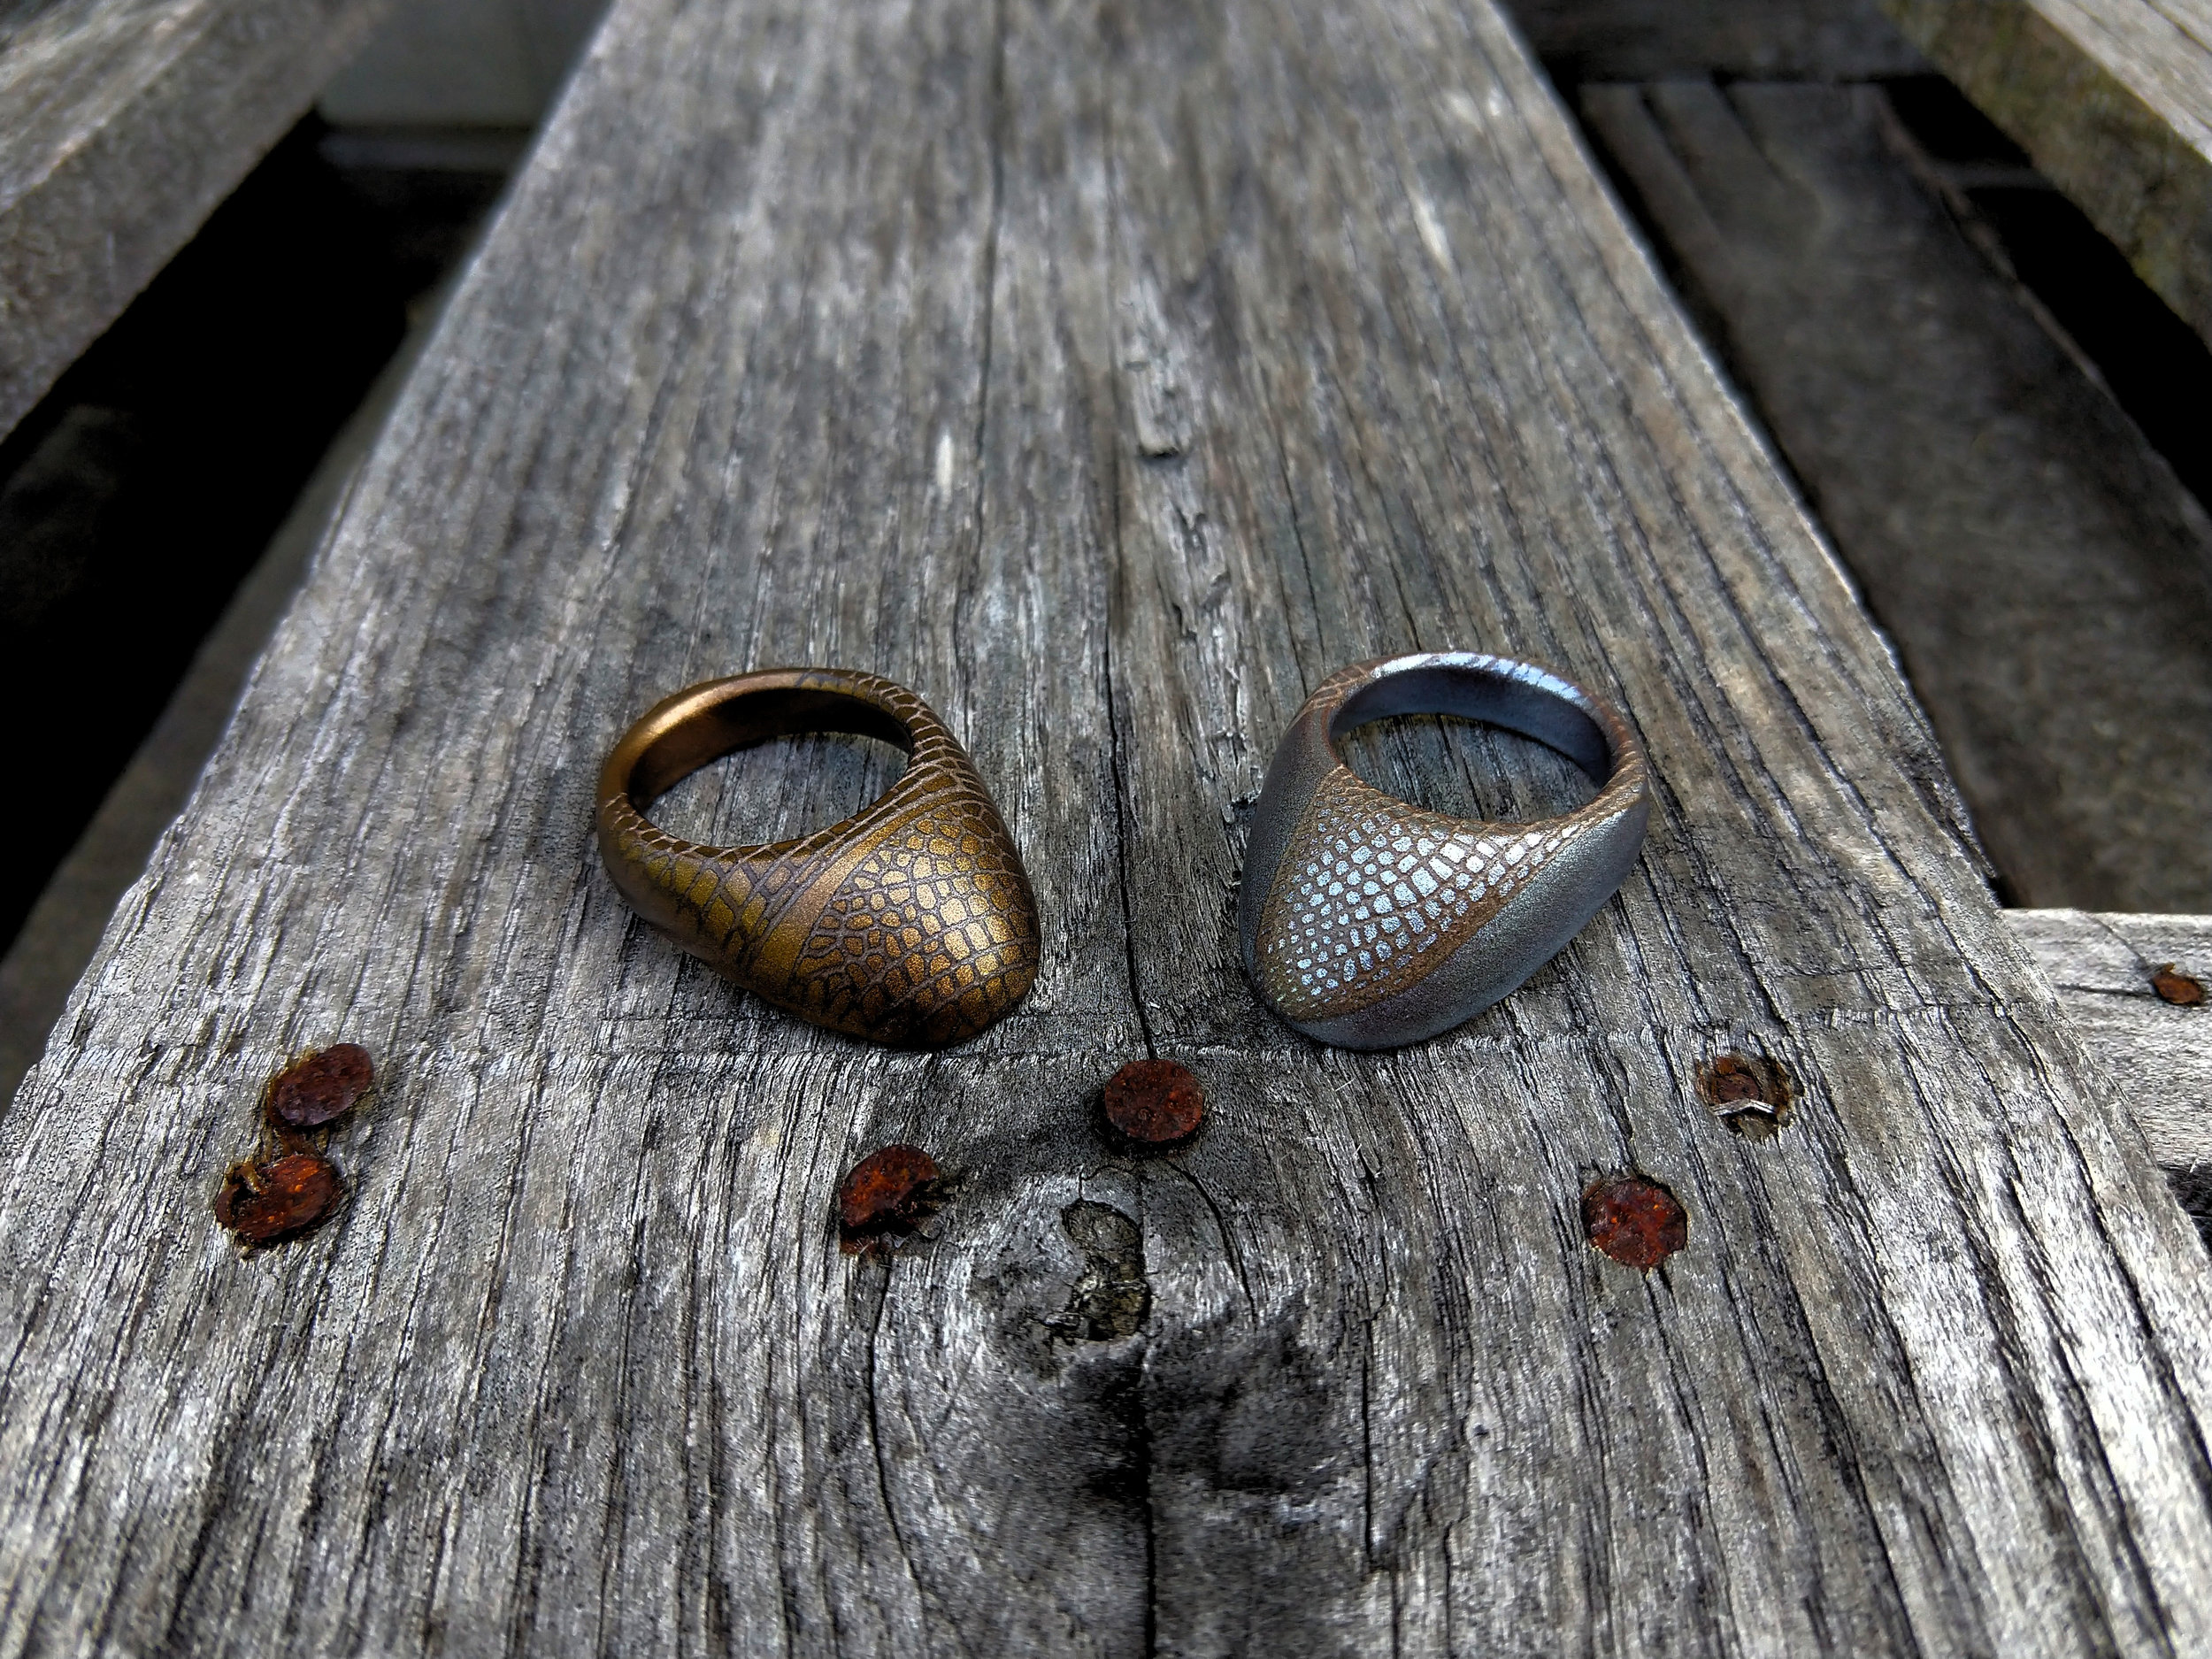 Ottoman rings bronze and silver over metallic copper with dragonfly patterning